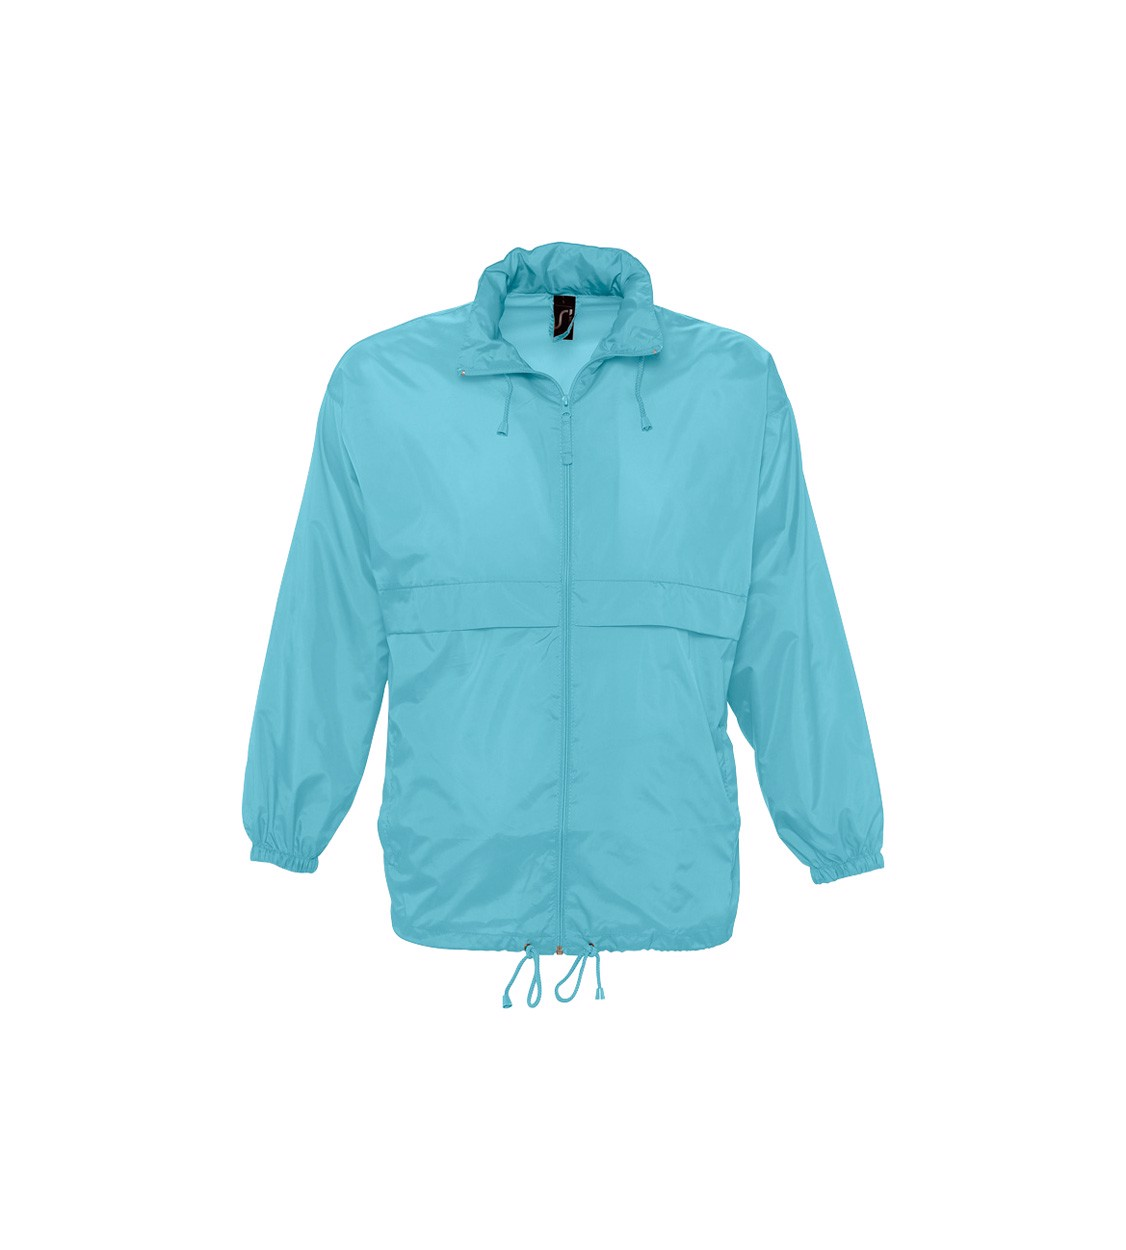 Unisex Jacket Surf 210 - Light Blue / XXL